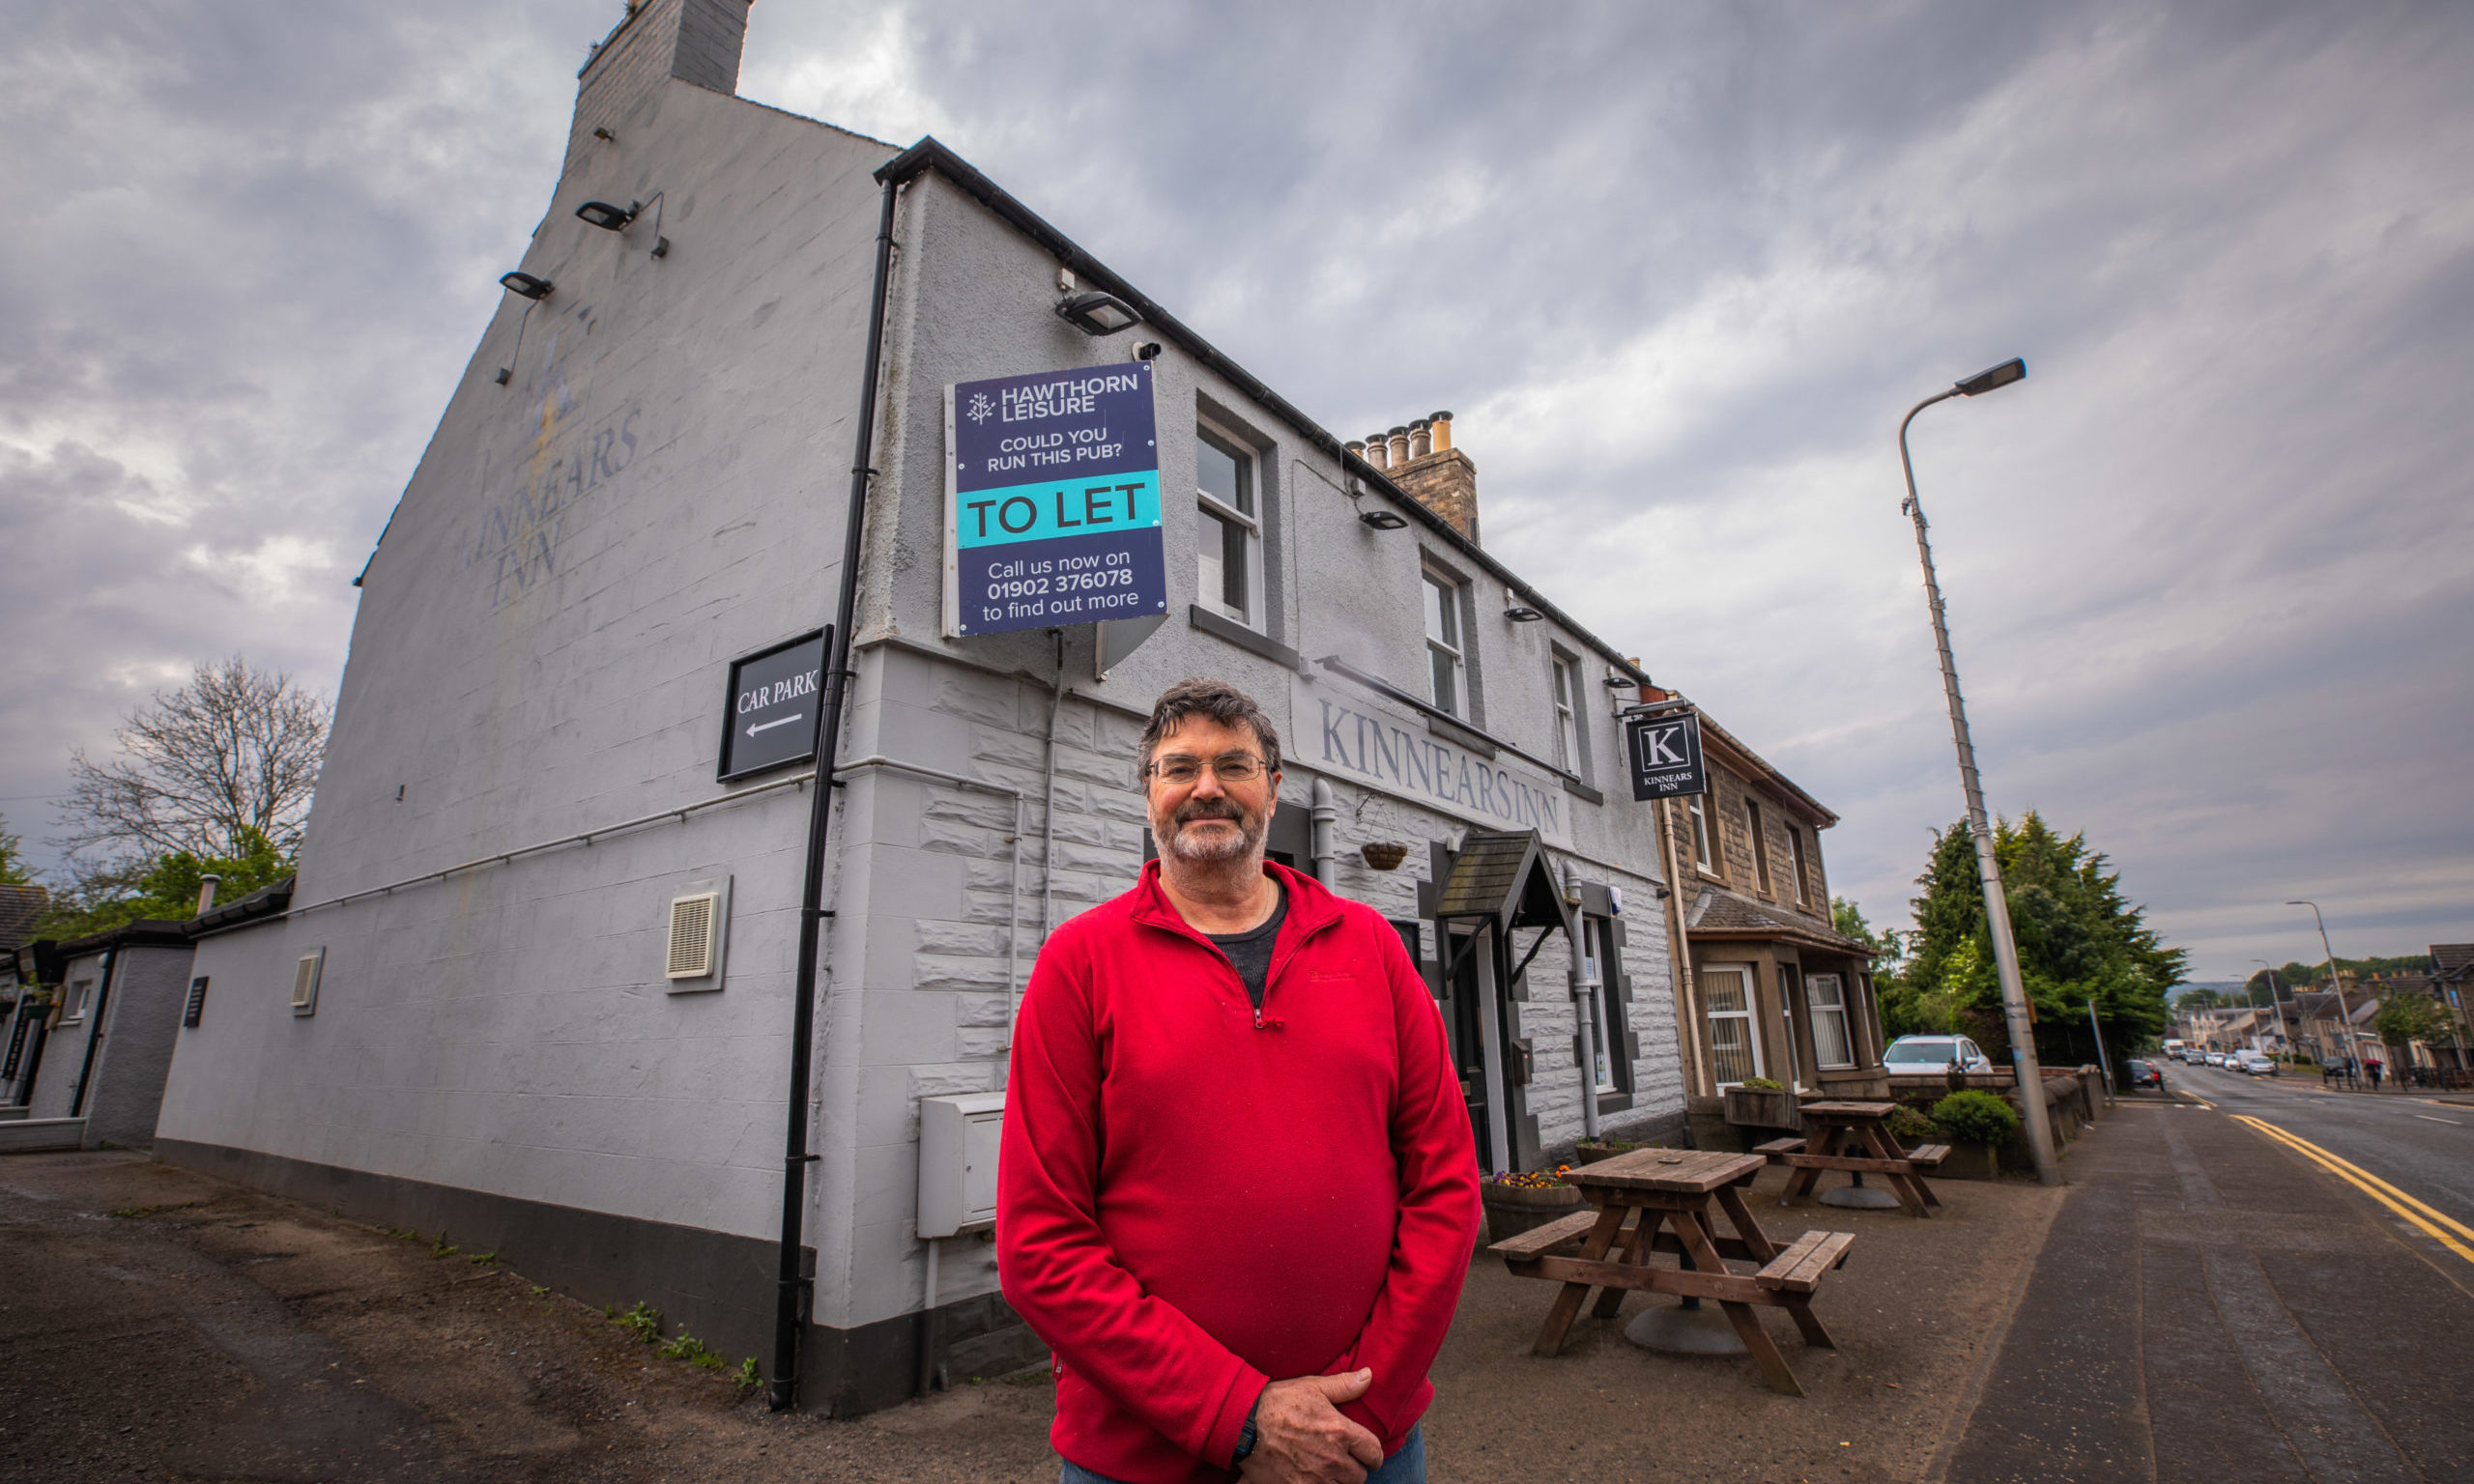 David Reekie has been forced to all time on his lease of the Kinnears Inn, Scone.